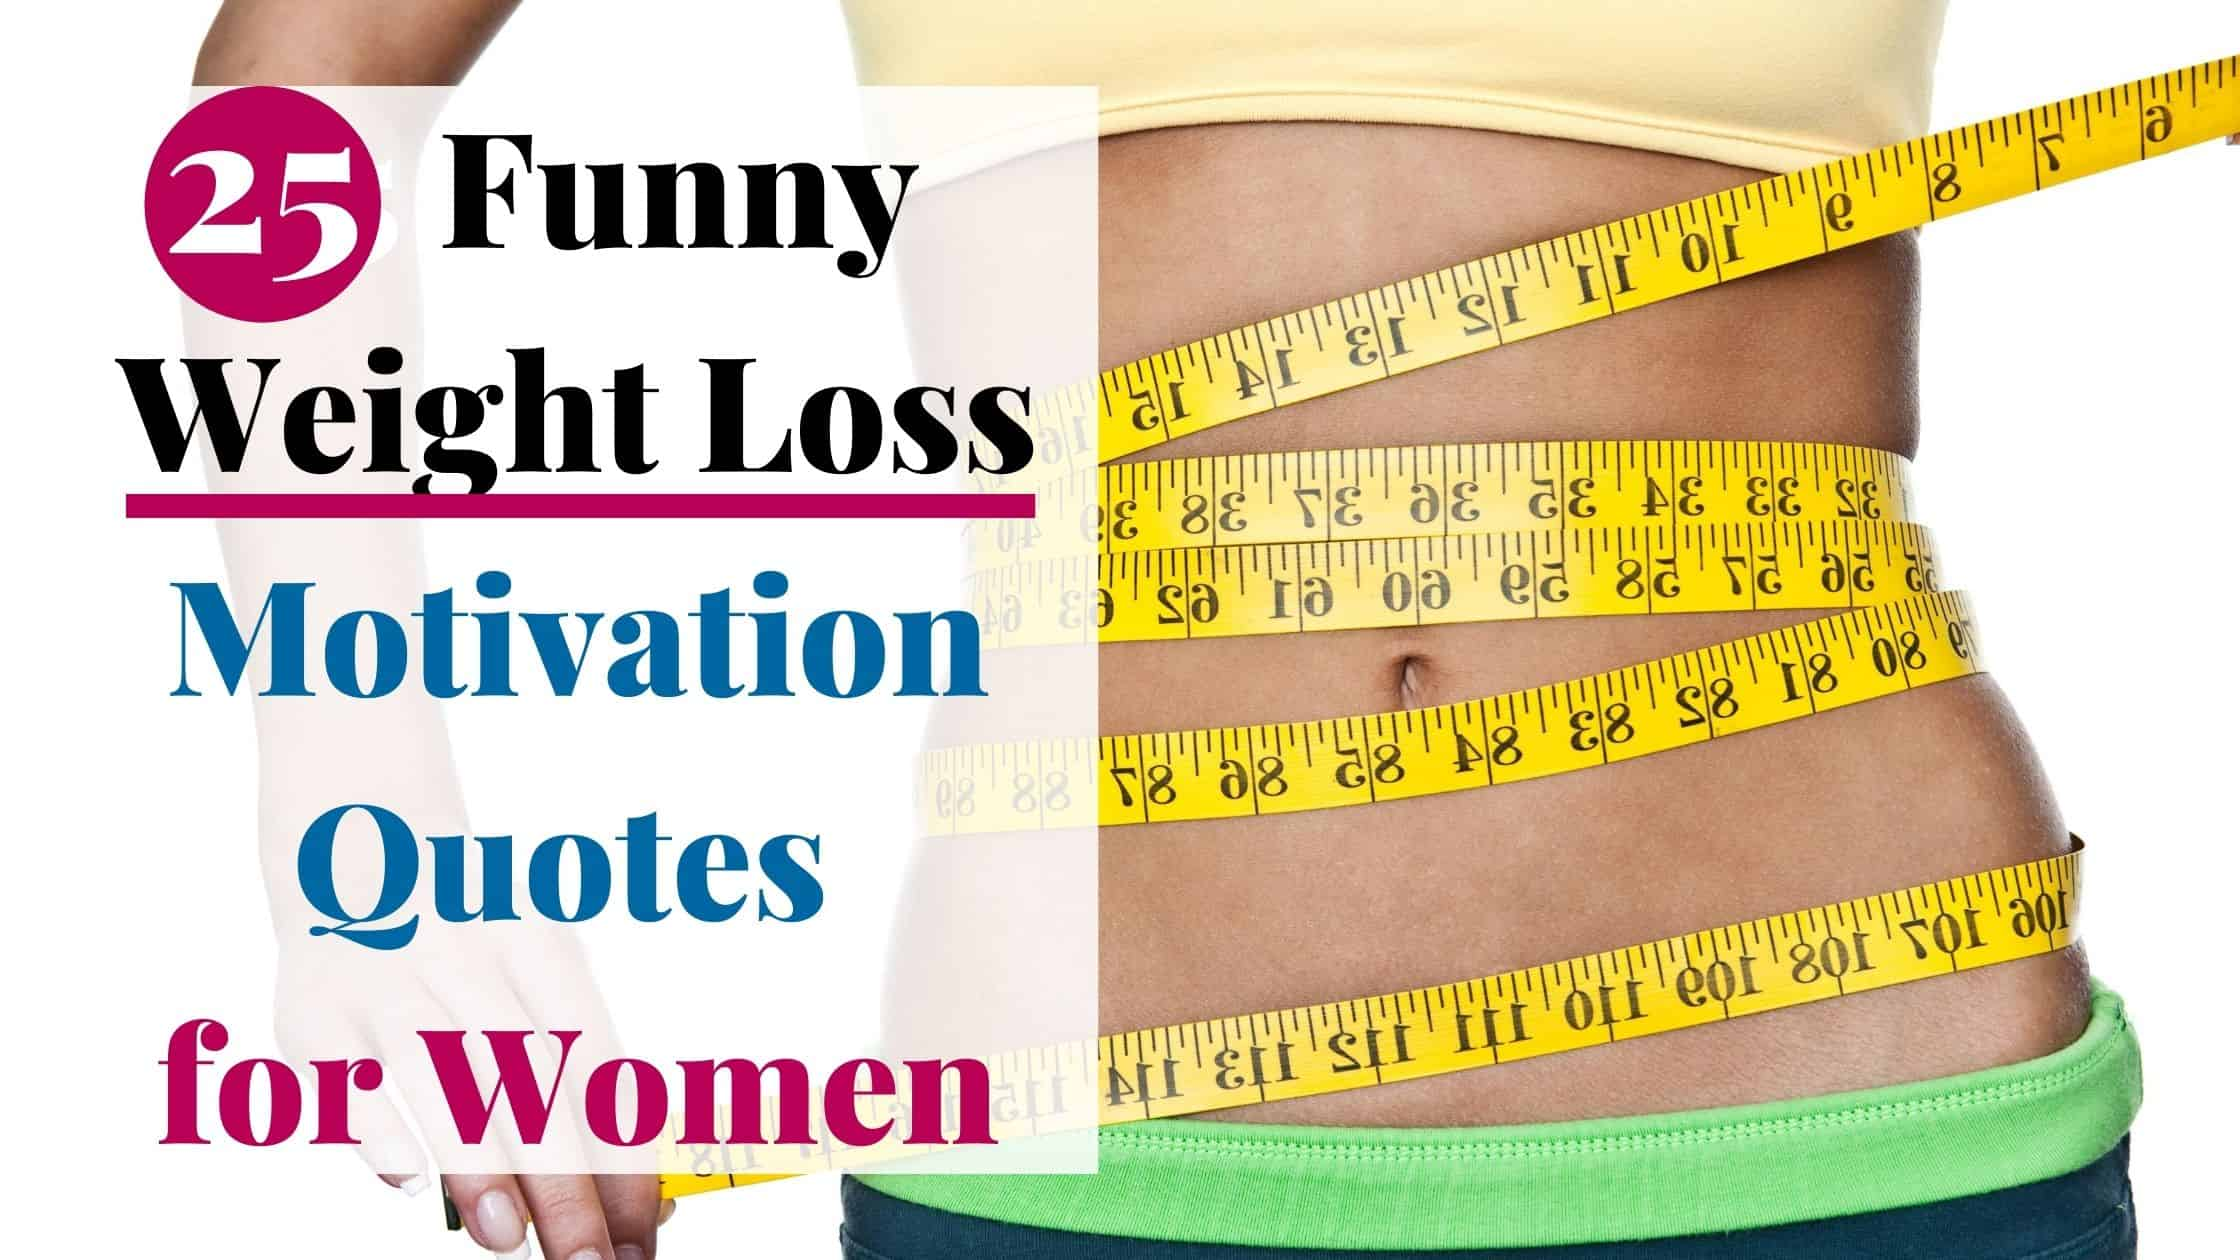 25 Funny Weight Loss Motivation Quotes for Women